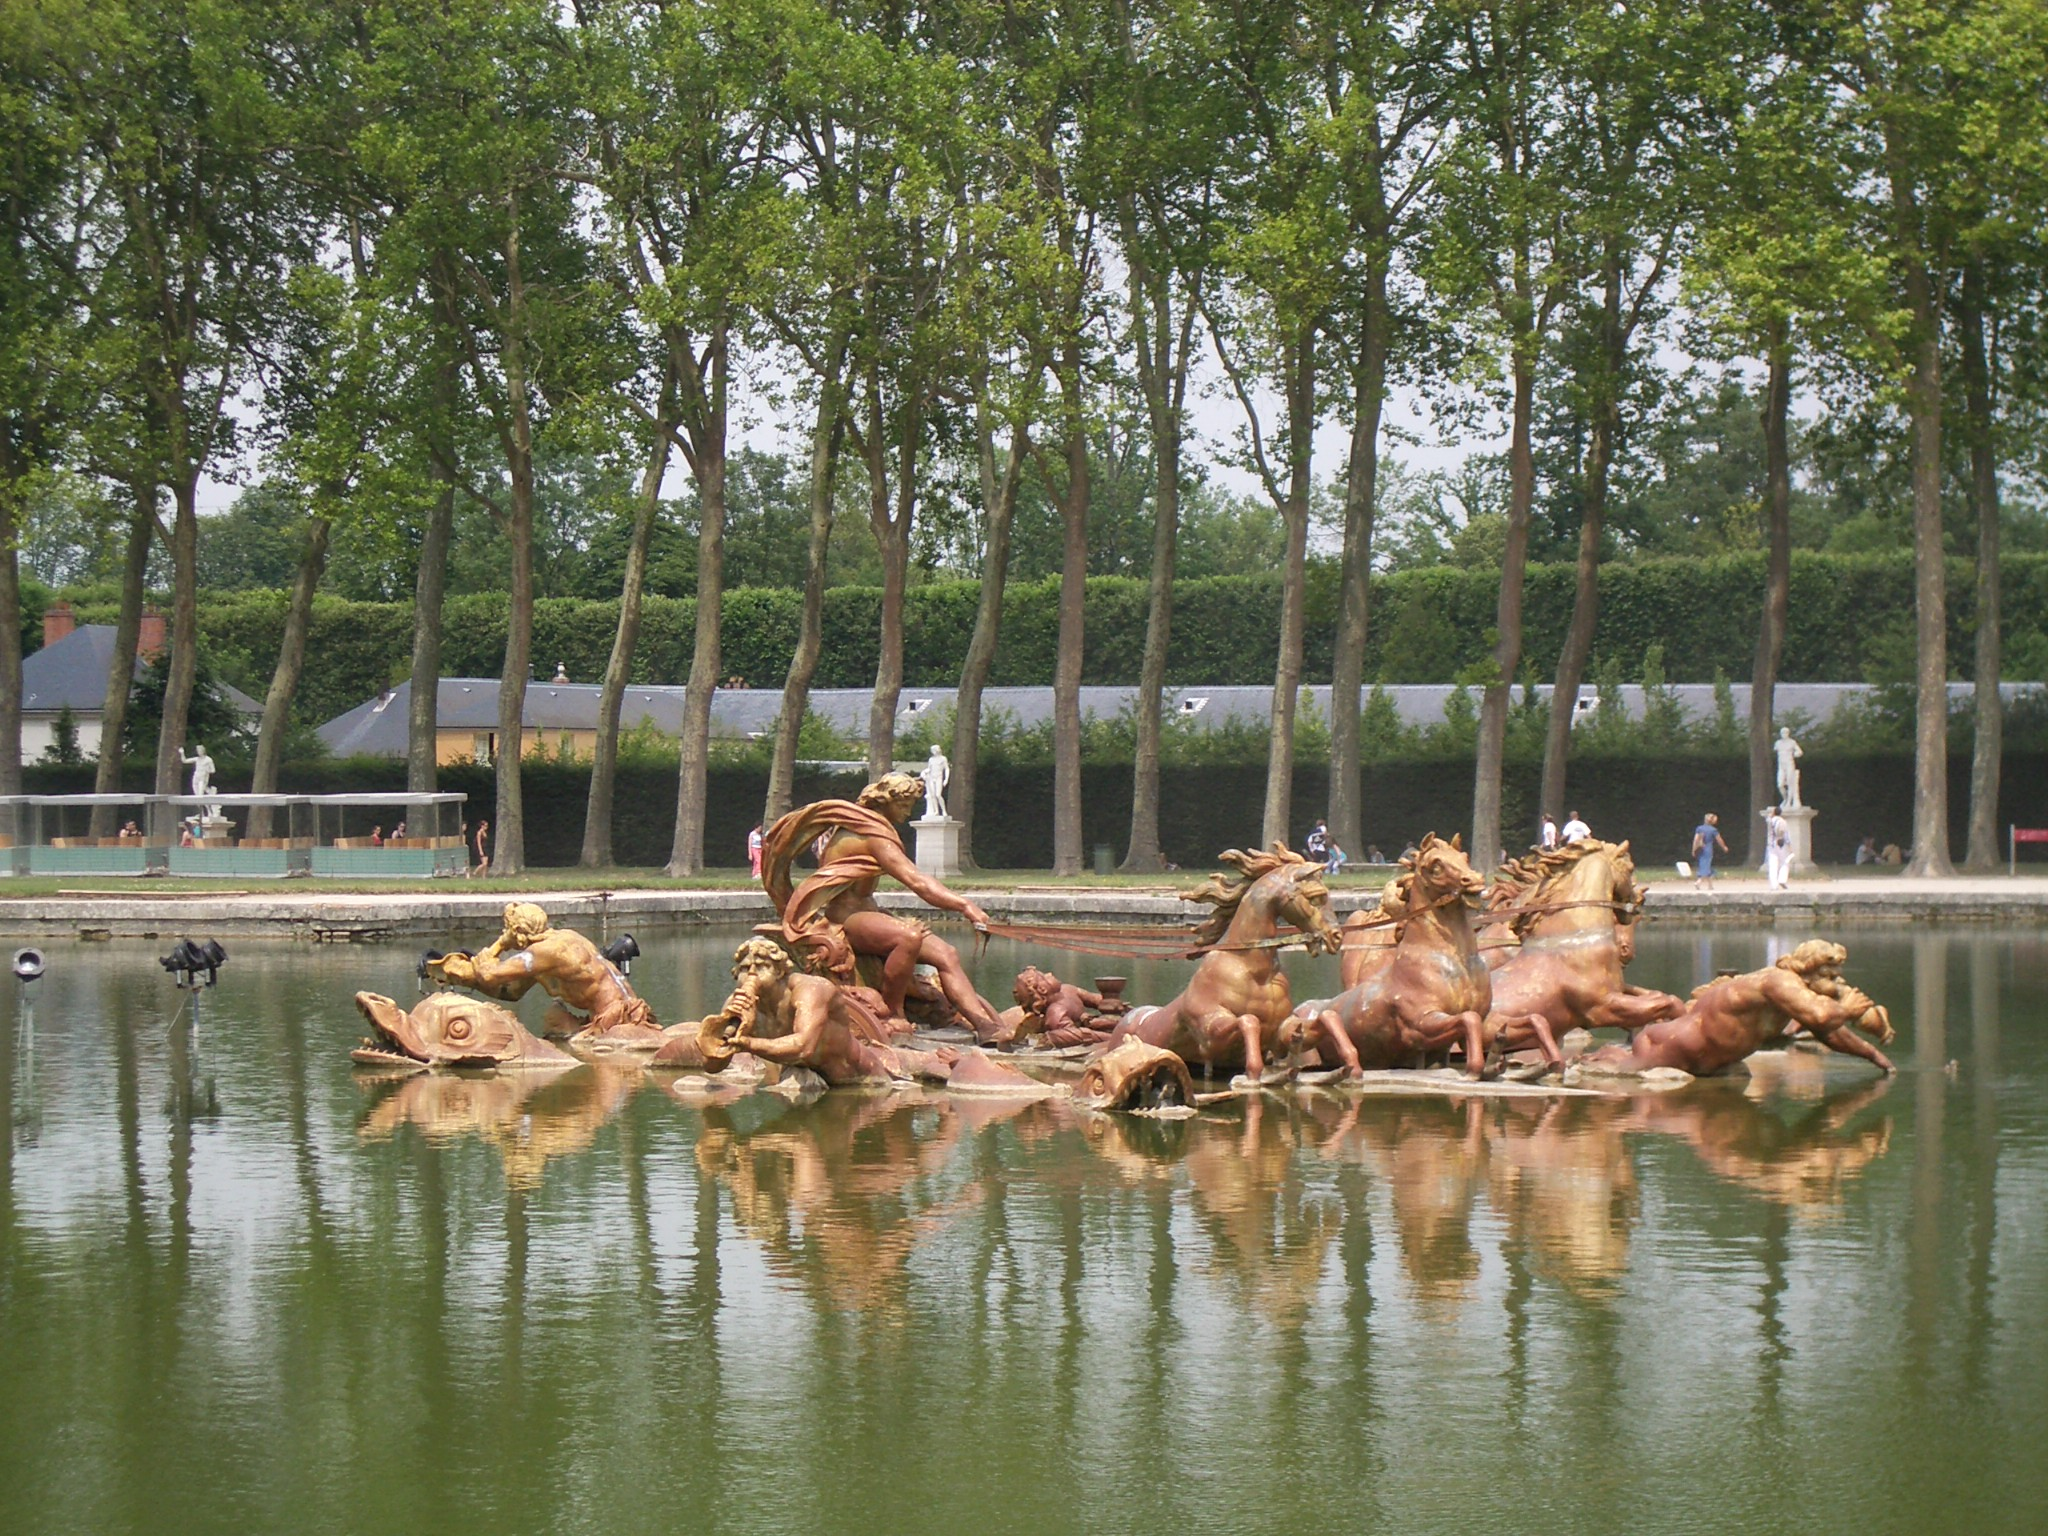 https://upload.wikimedia.org/wikipedia/commons/5/54/Palace_of_Versailles_Gardens_13.JPG